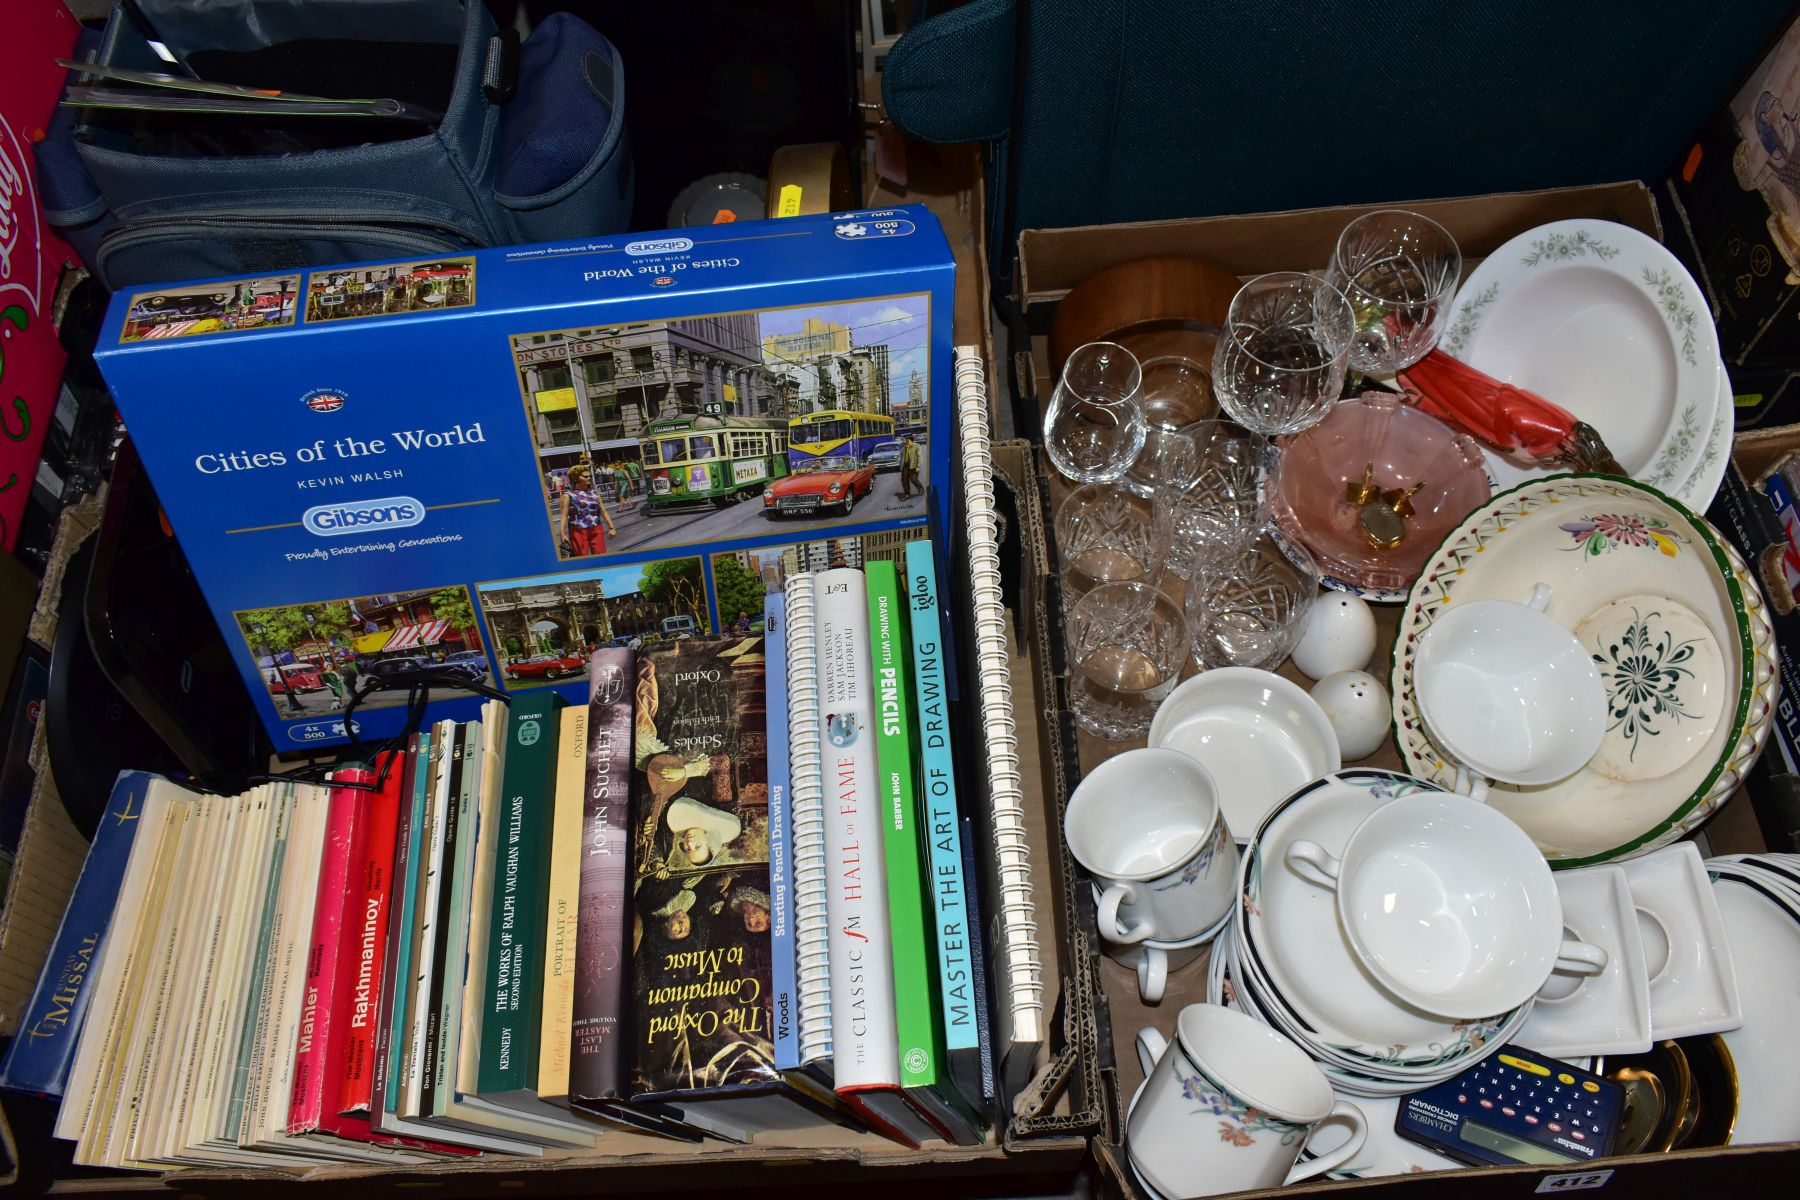 THREE BOXES AND LOOSE CERAMICS, GLASS, BOOKS, CD'S, A SUITCASE, ETC, including Royal Doulton Juno